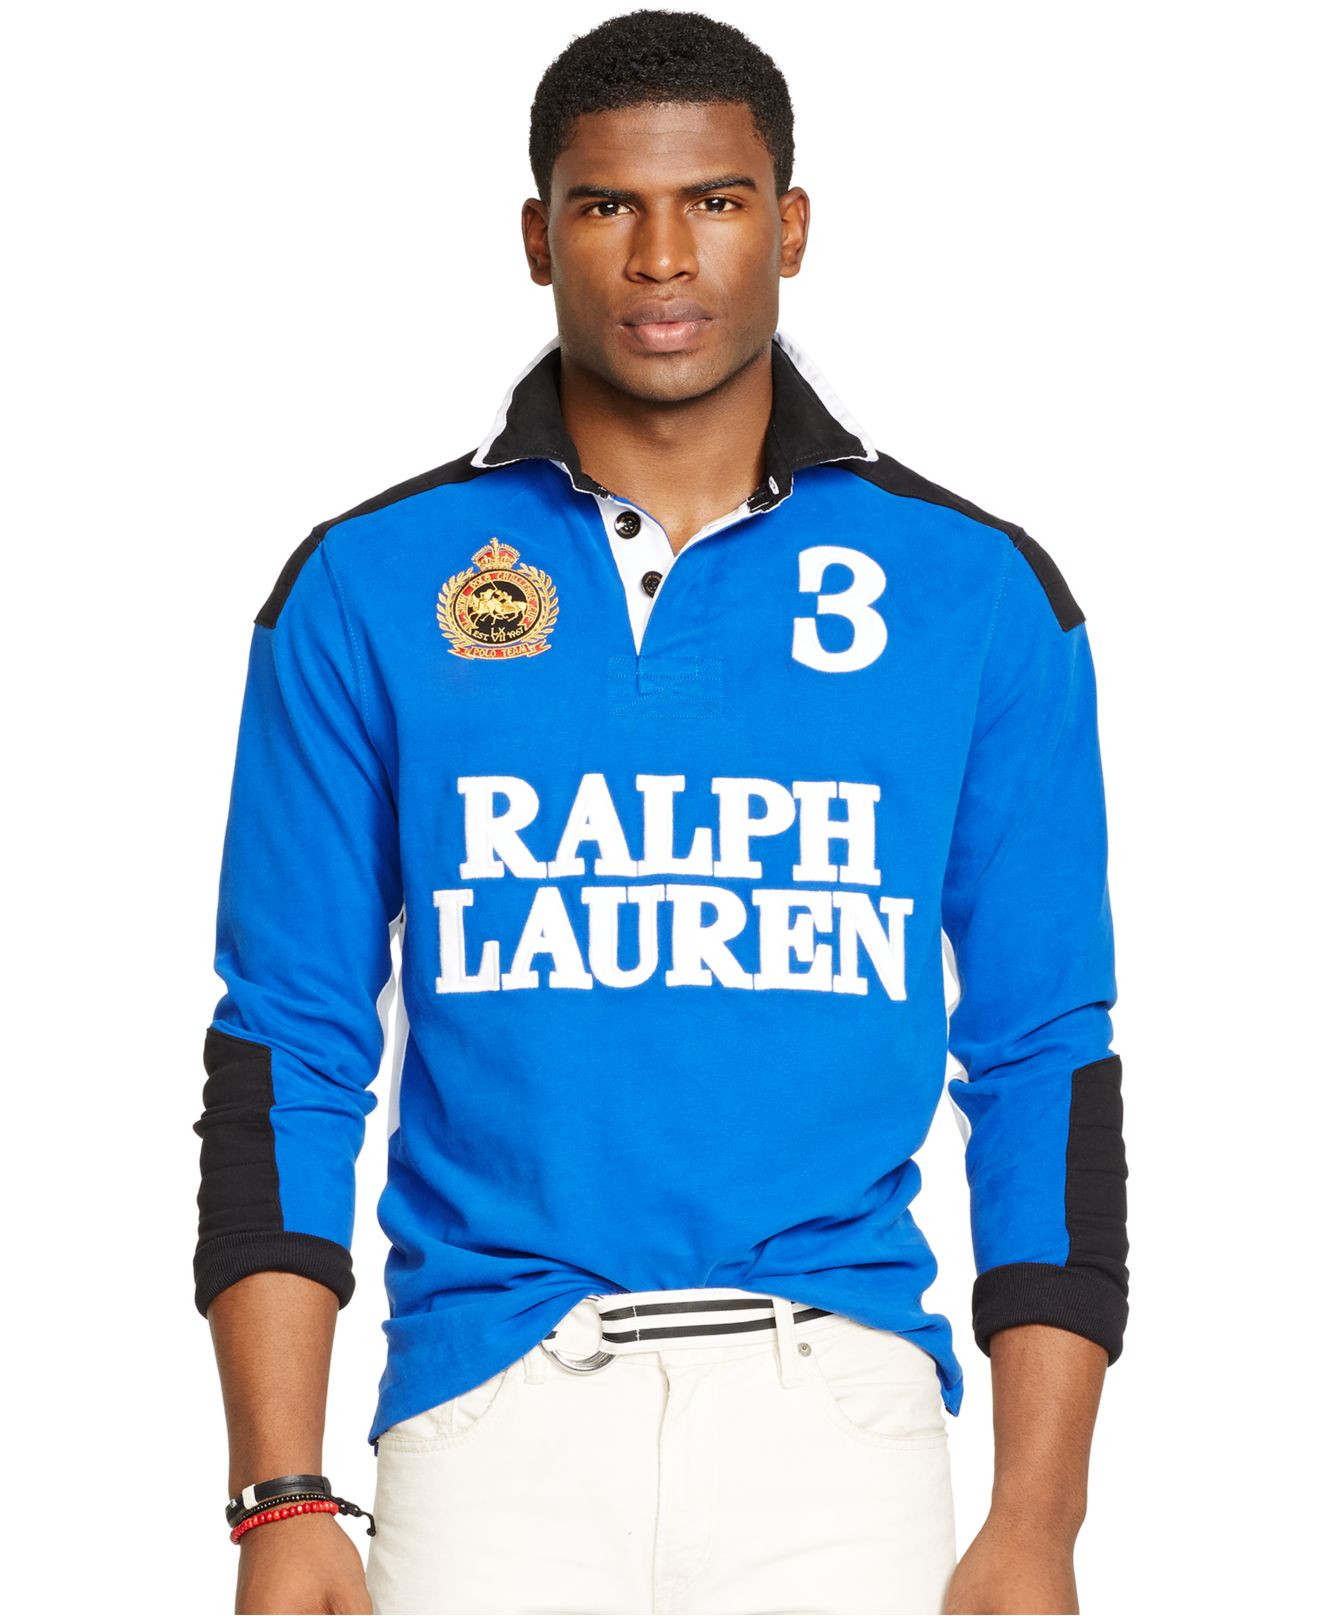 Polo ralph lauren rugby sweater dr e horn gmbh dr e for Big and tall polo rugby shirts